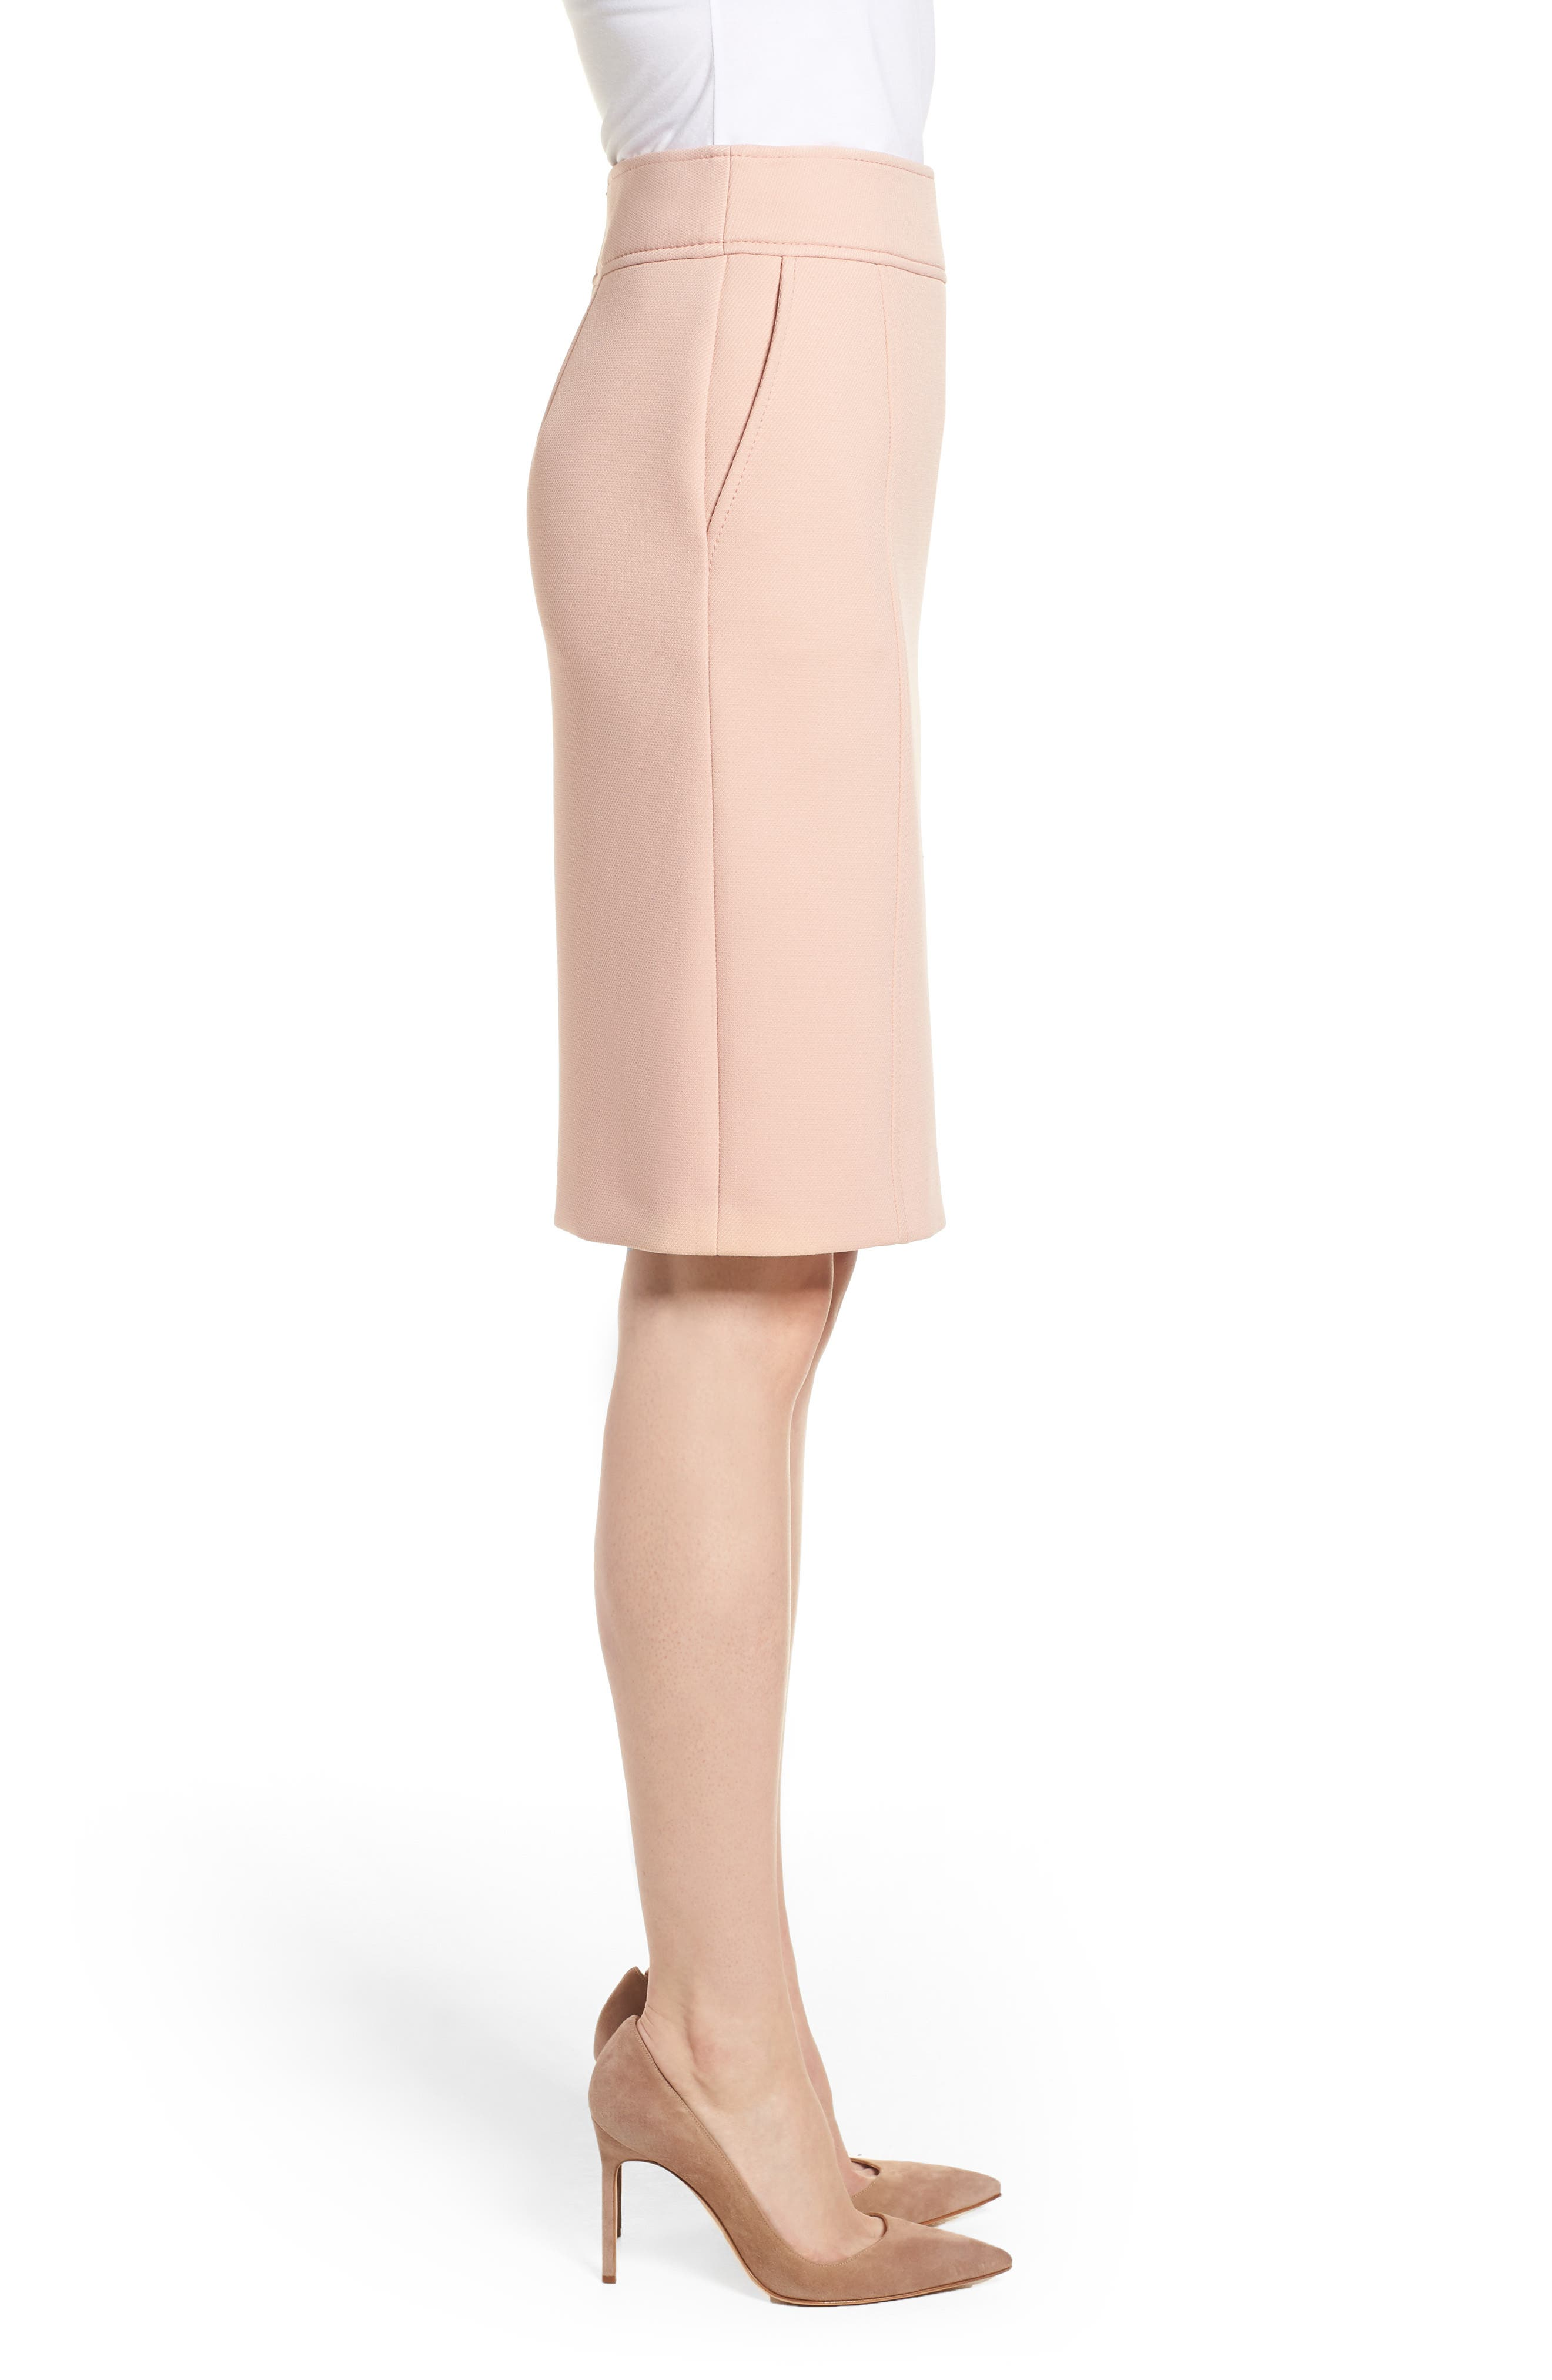 Vuleama Compact Twill Pencil Skirt,                             Alternate thumbnail 3, color,                             Blush